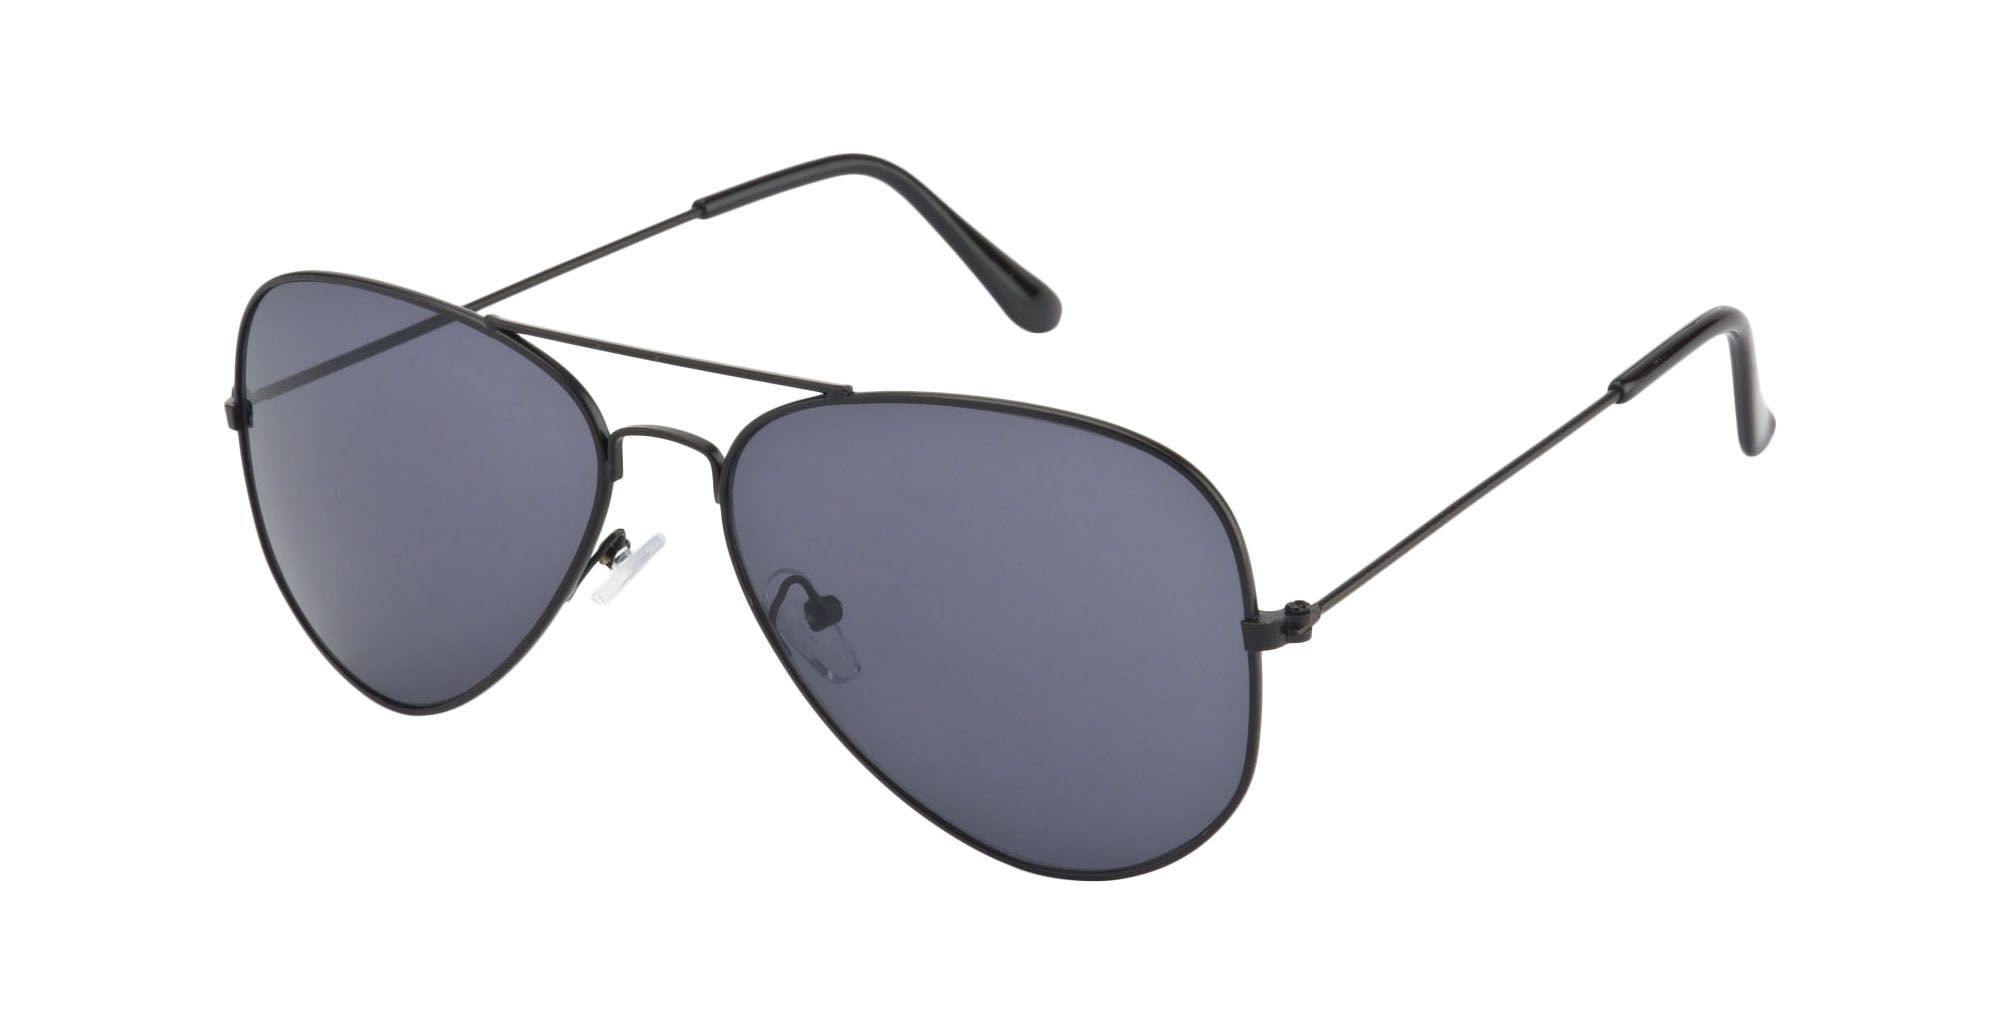 buy aviator sunglasses online  Fair-x Stylish Black Aviator Sunglasses Unisex - Buy Fair-x ...